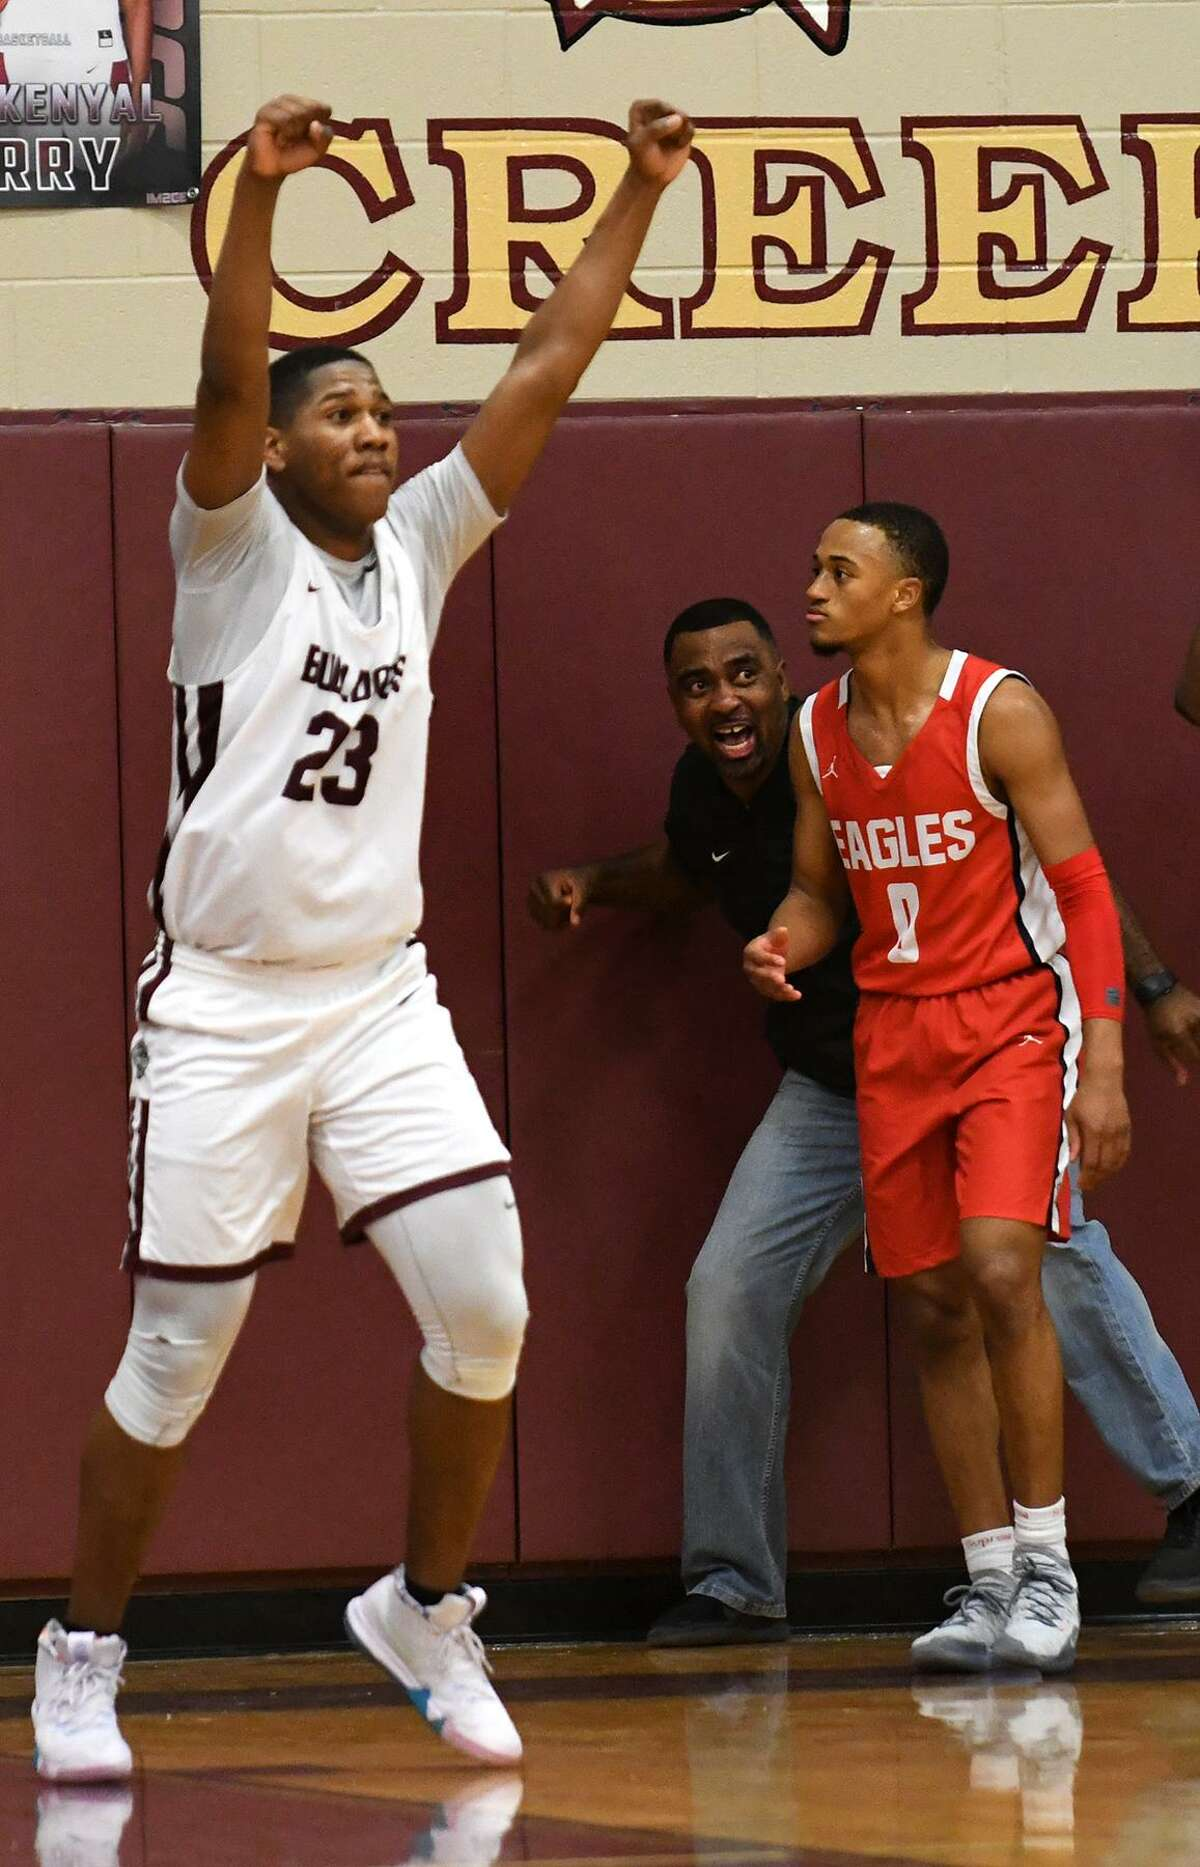 Summer Creek senior guard Dylan Phillips (23) celebrates the Bulldog's win over Joe Rollins (0) and the Atascoita Eagles in their District 22-6A matchup at Summer Creek High School on Dec. 21, 2018.